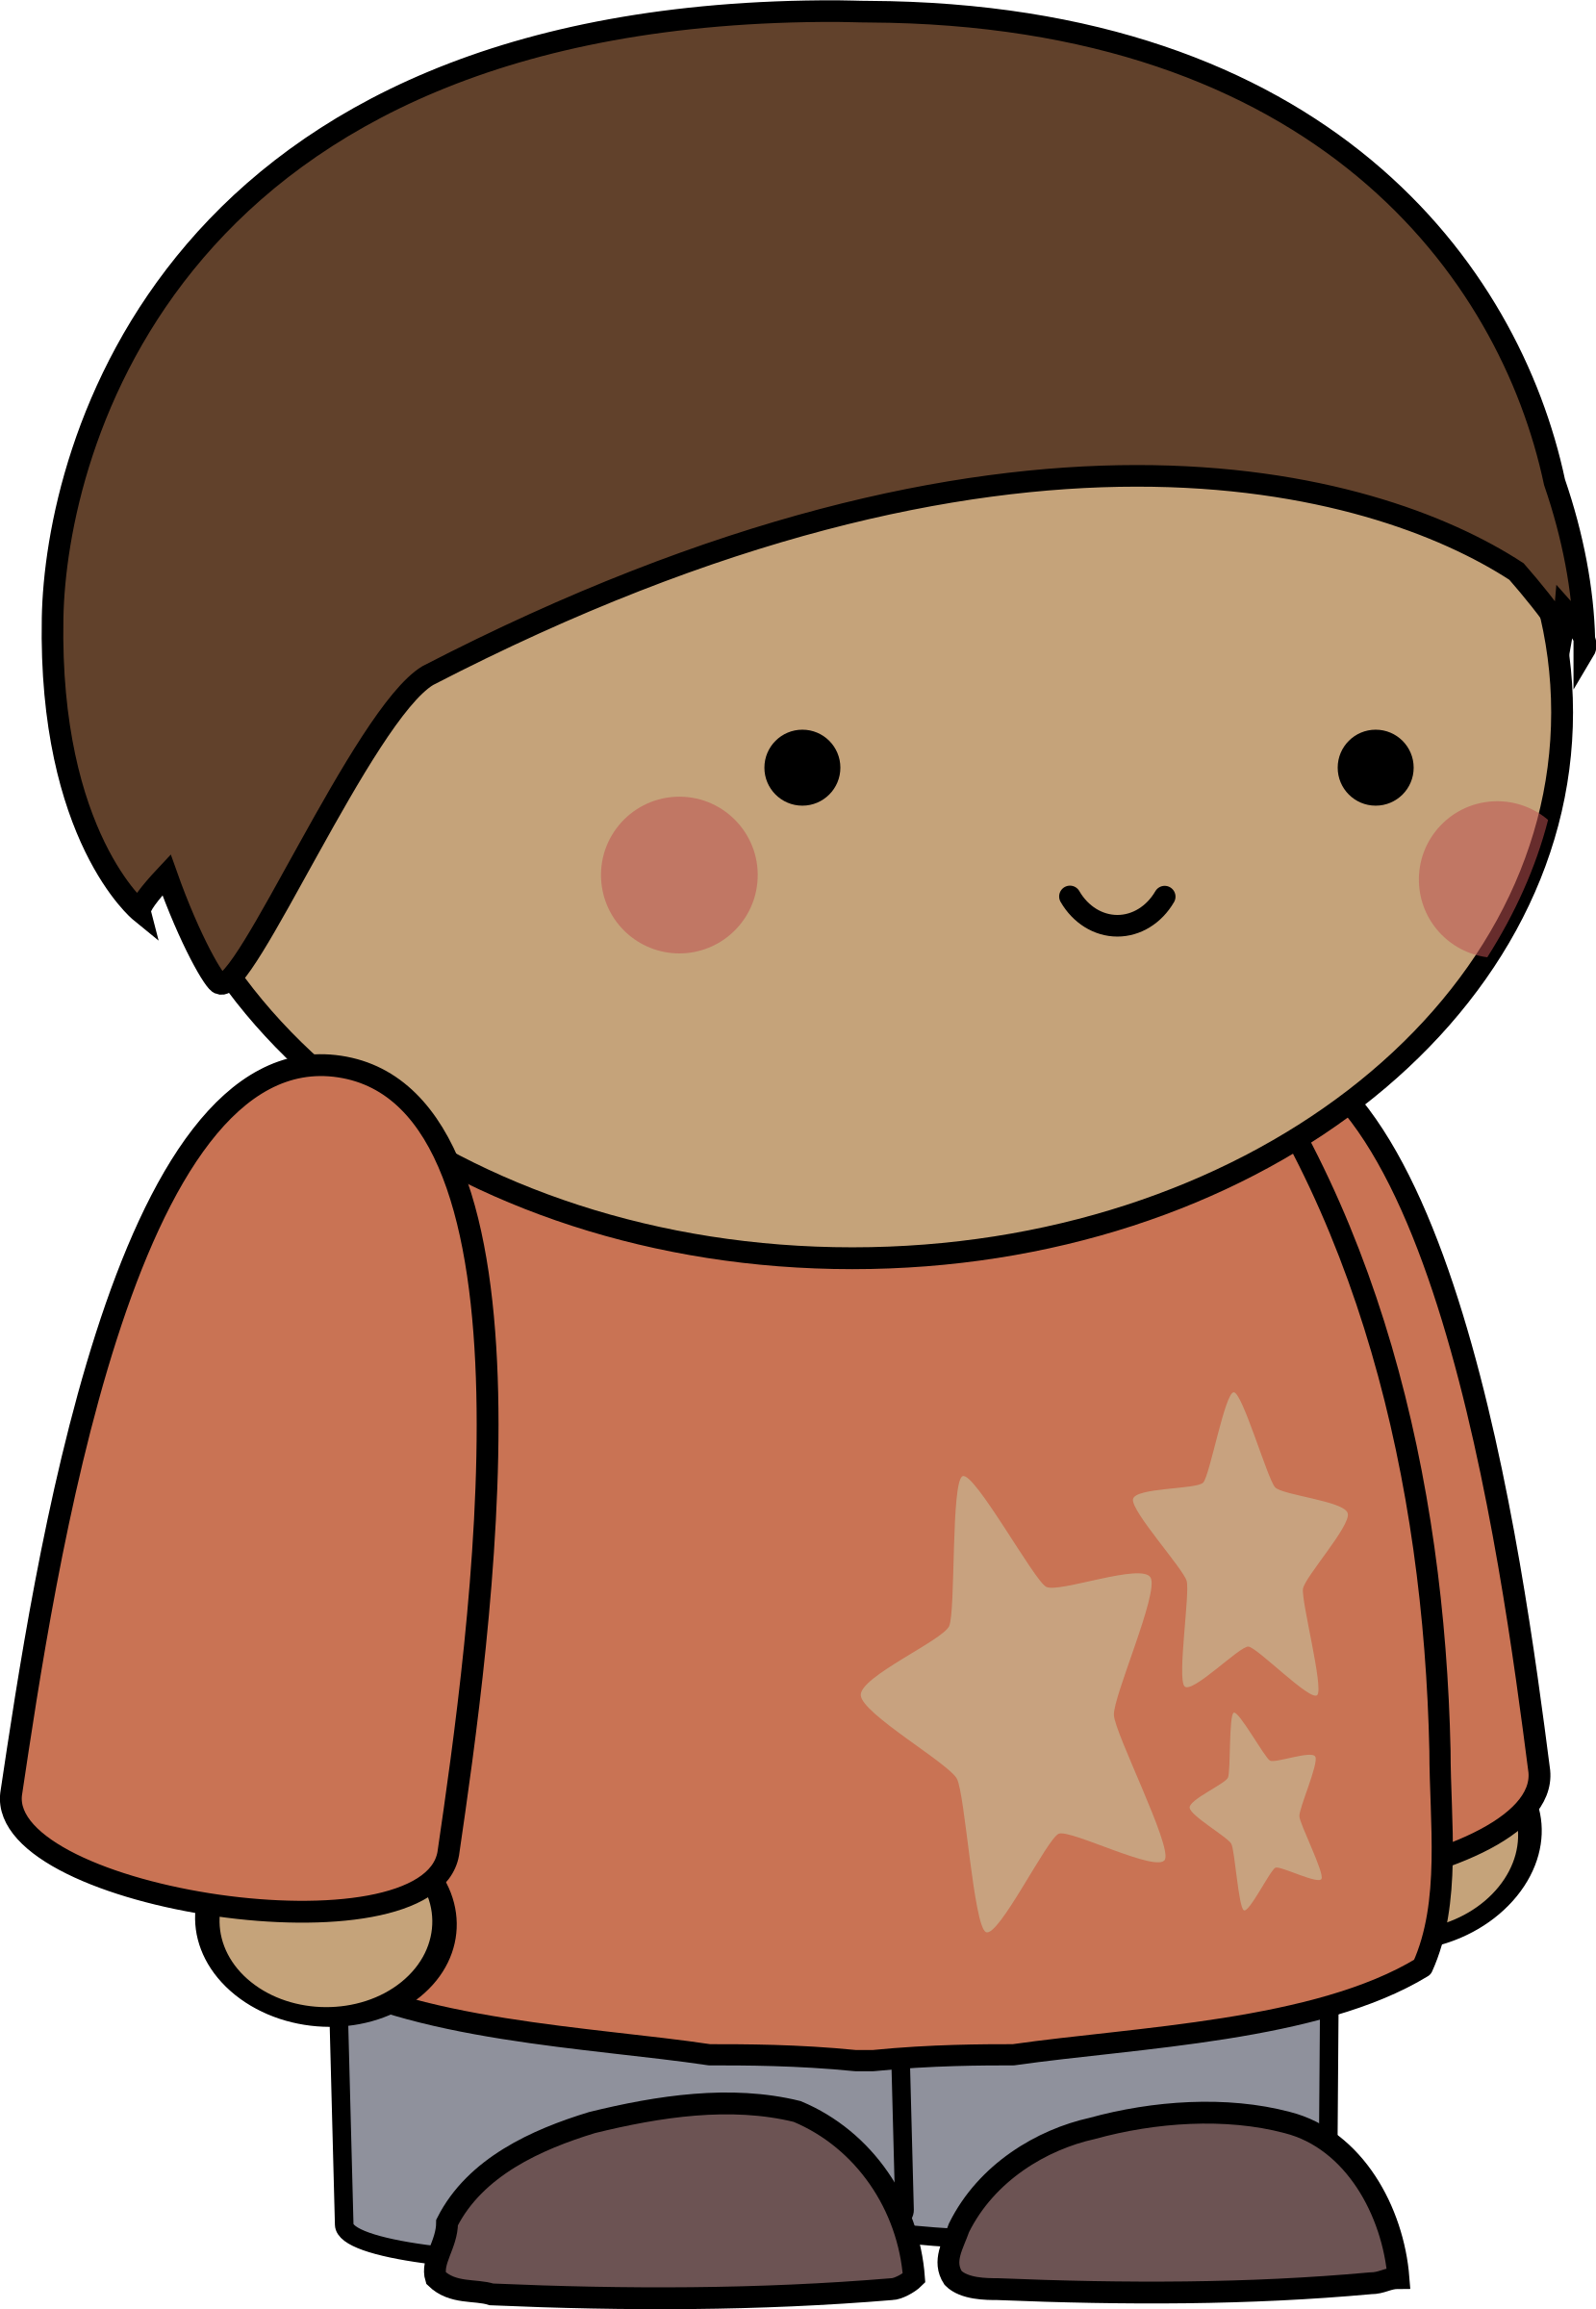 Blushing comic character big. Faces clipart embarrassed